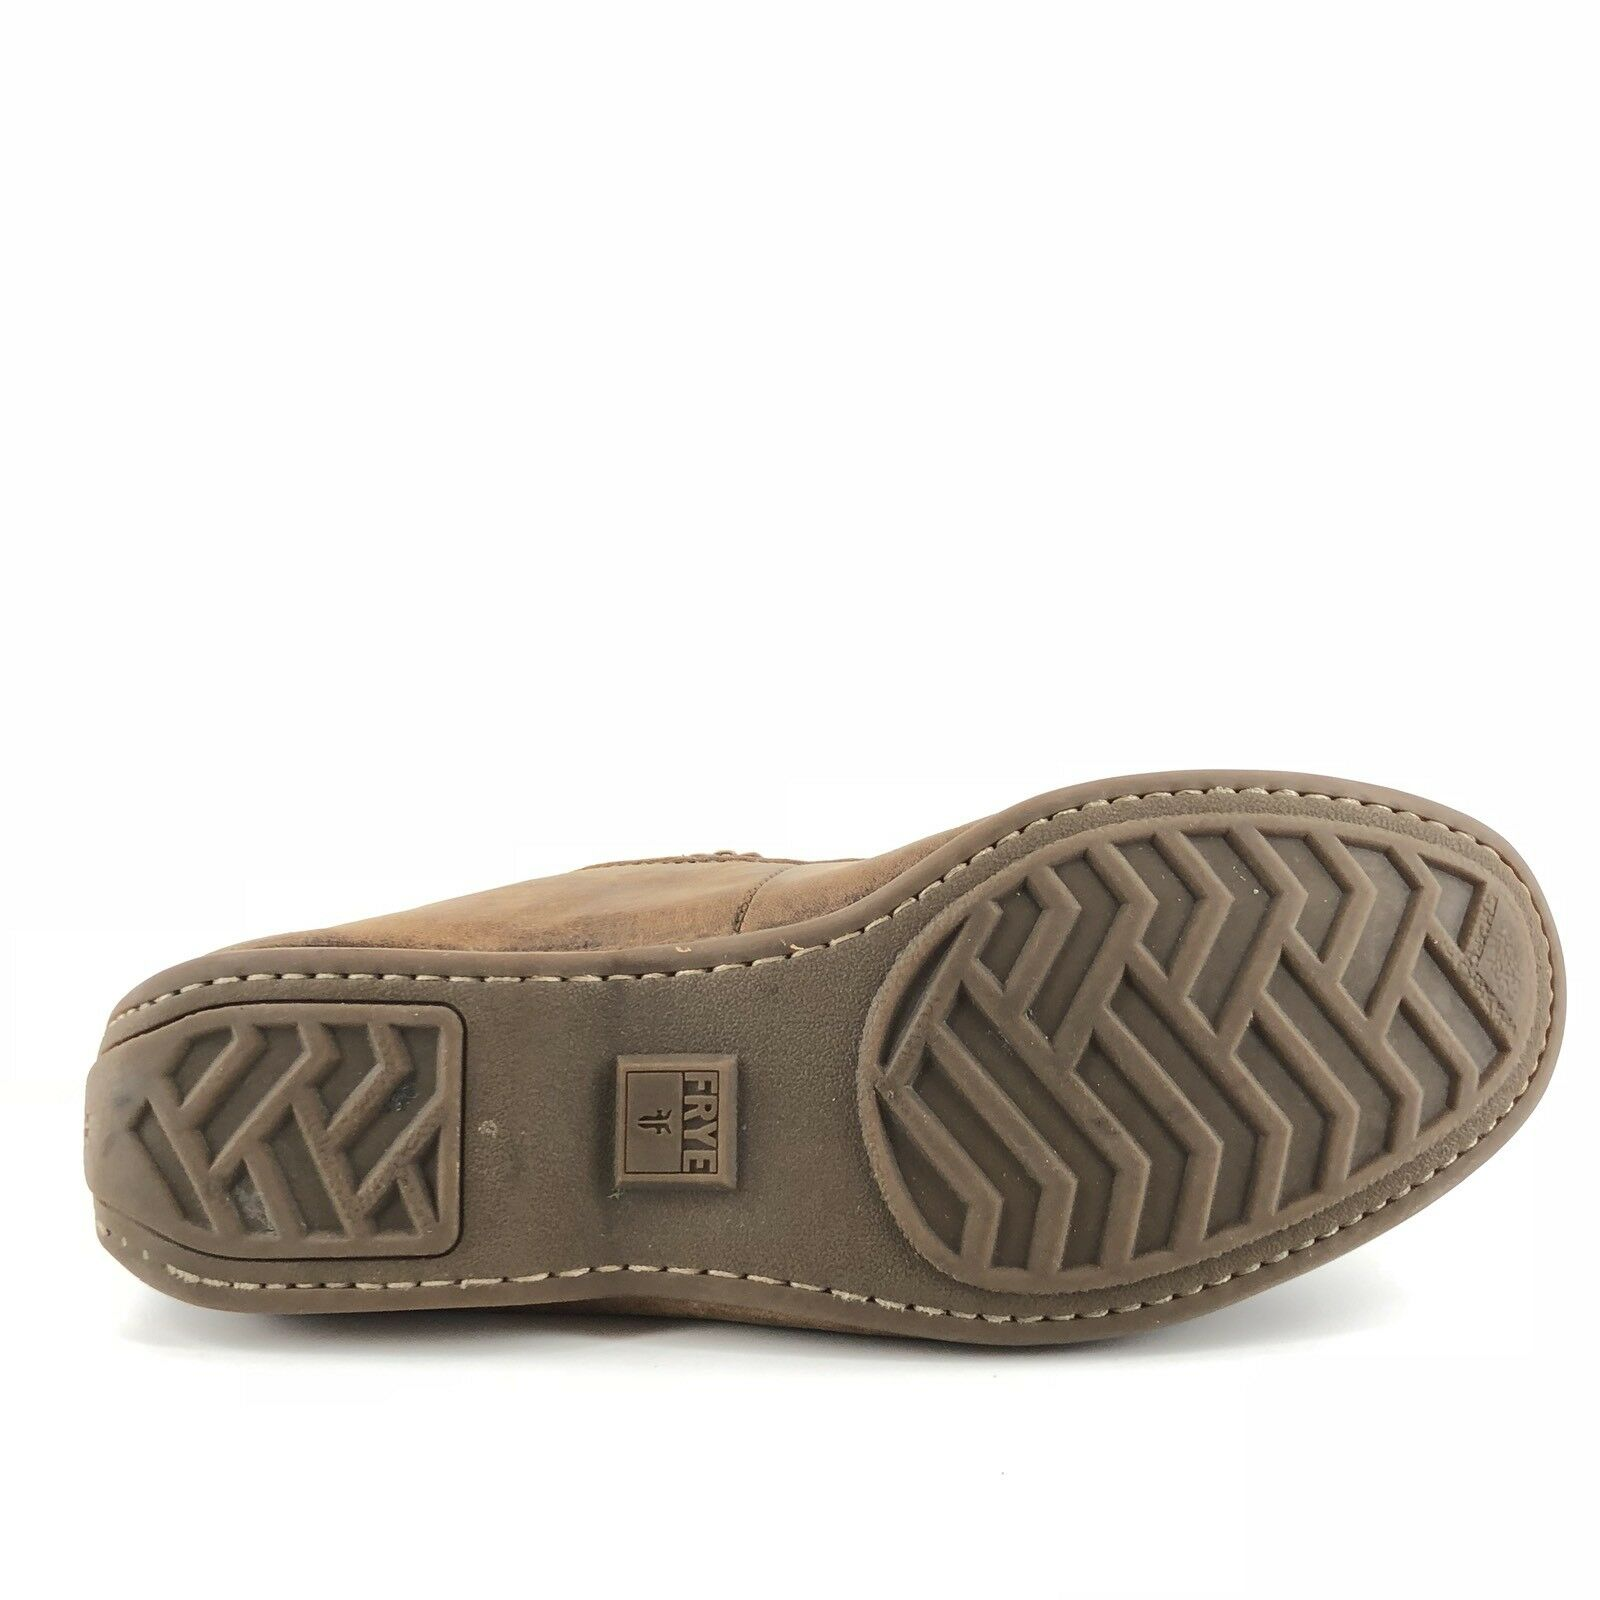 0f98722729a ... Frye Lewis Venetian Brown Brown Brown Leather Loafers Driving Mocs Mens  Size 7.5 M 8a8a00